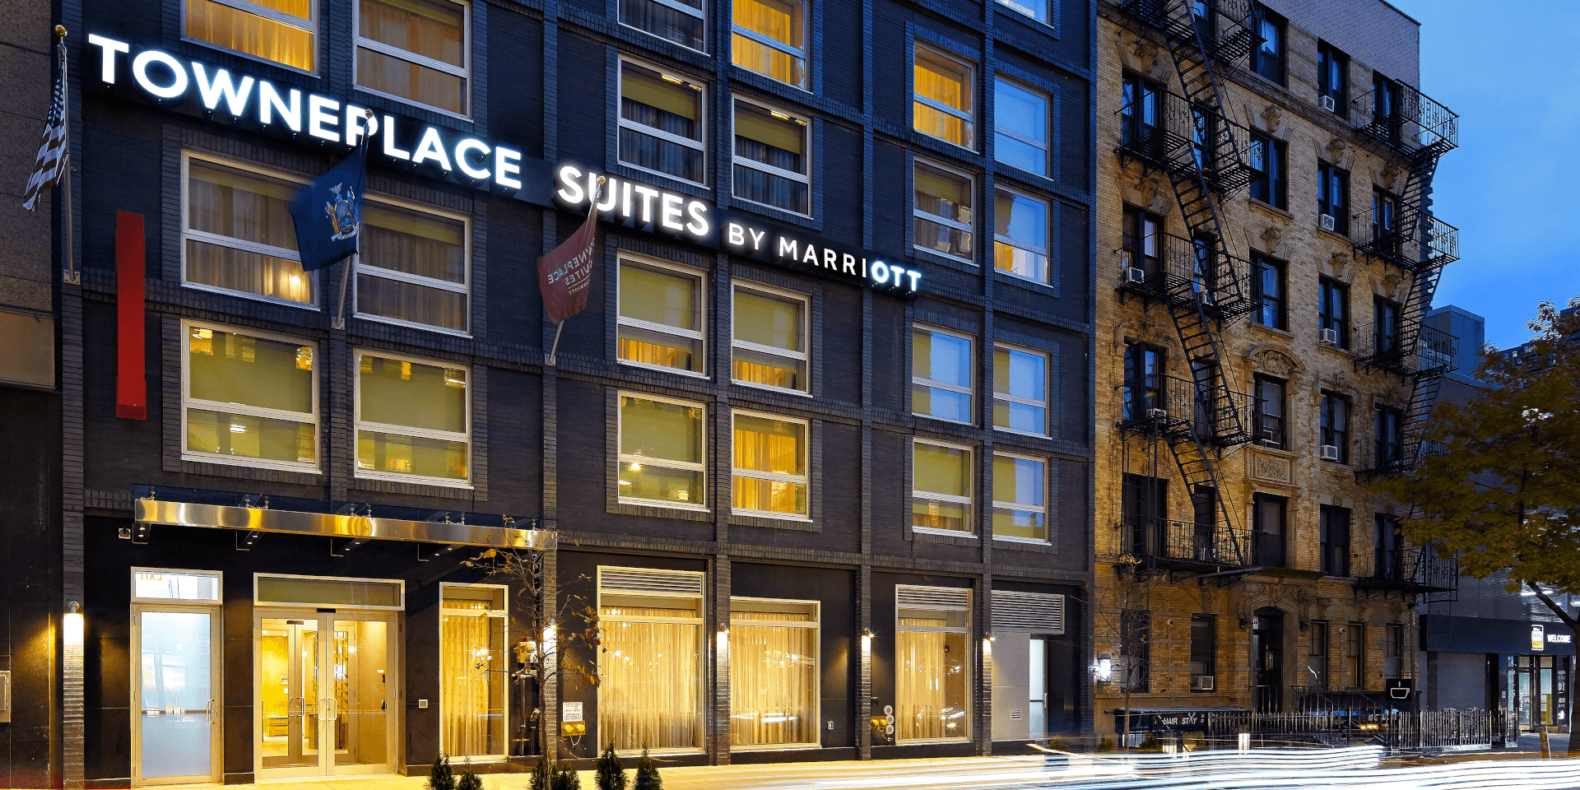 TownePlace Suites New York Manhattan - Times Square